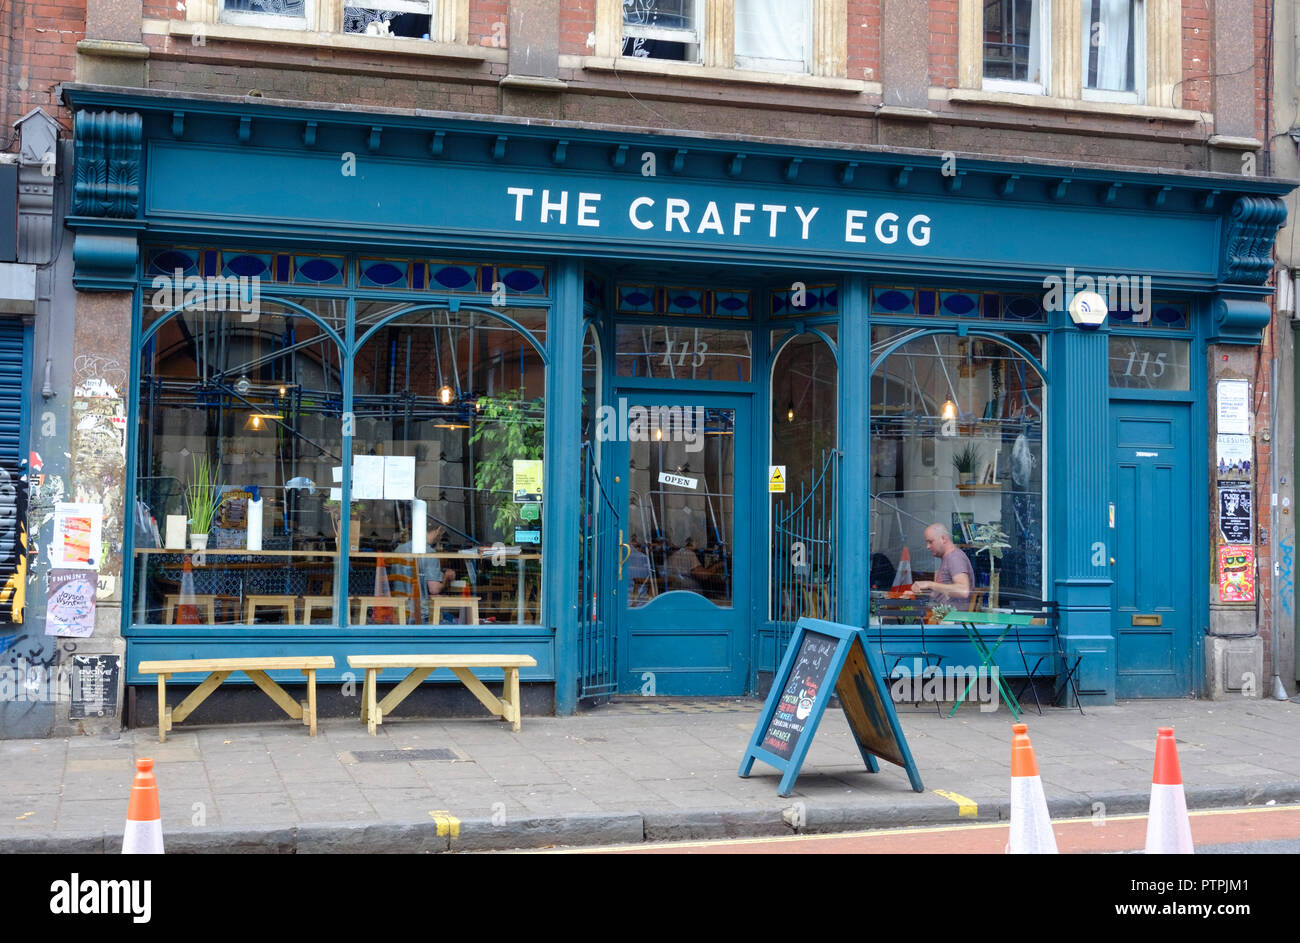 Around Stokes Croft, a Hip area of Bristol.Crafty egg cafe - Stock Image